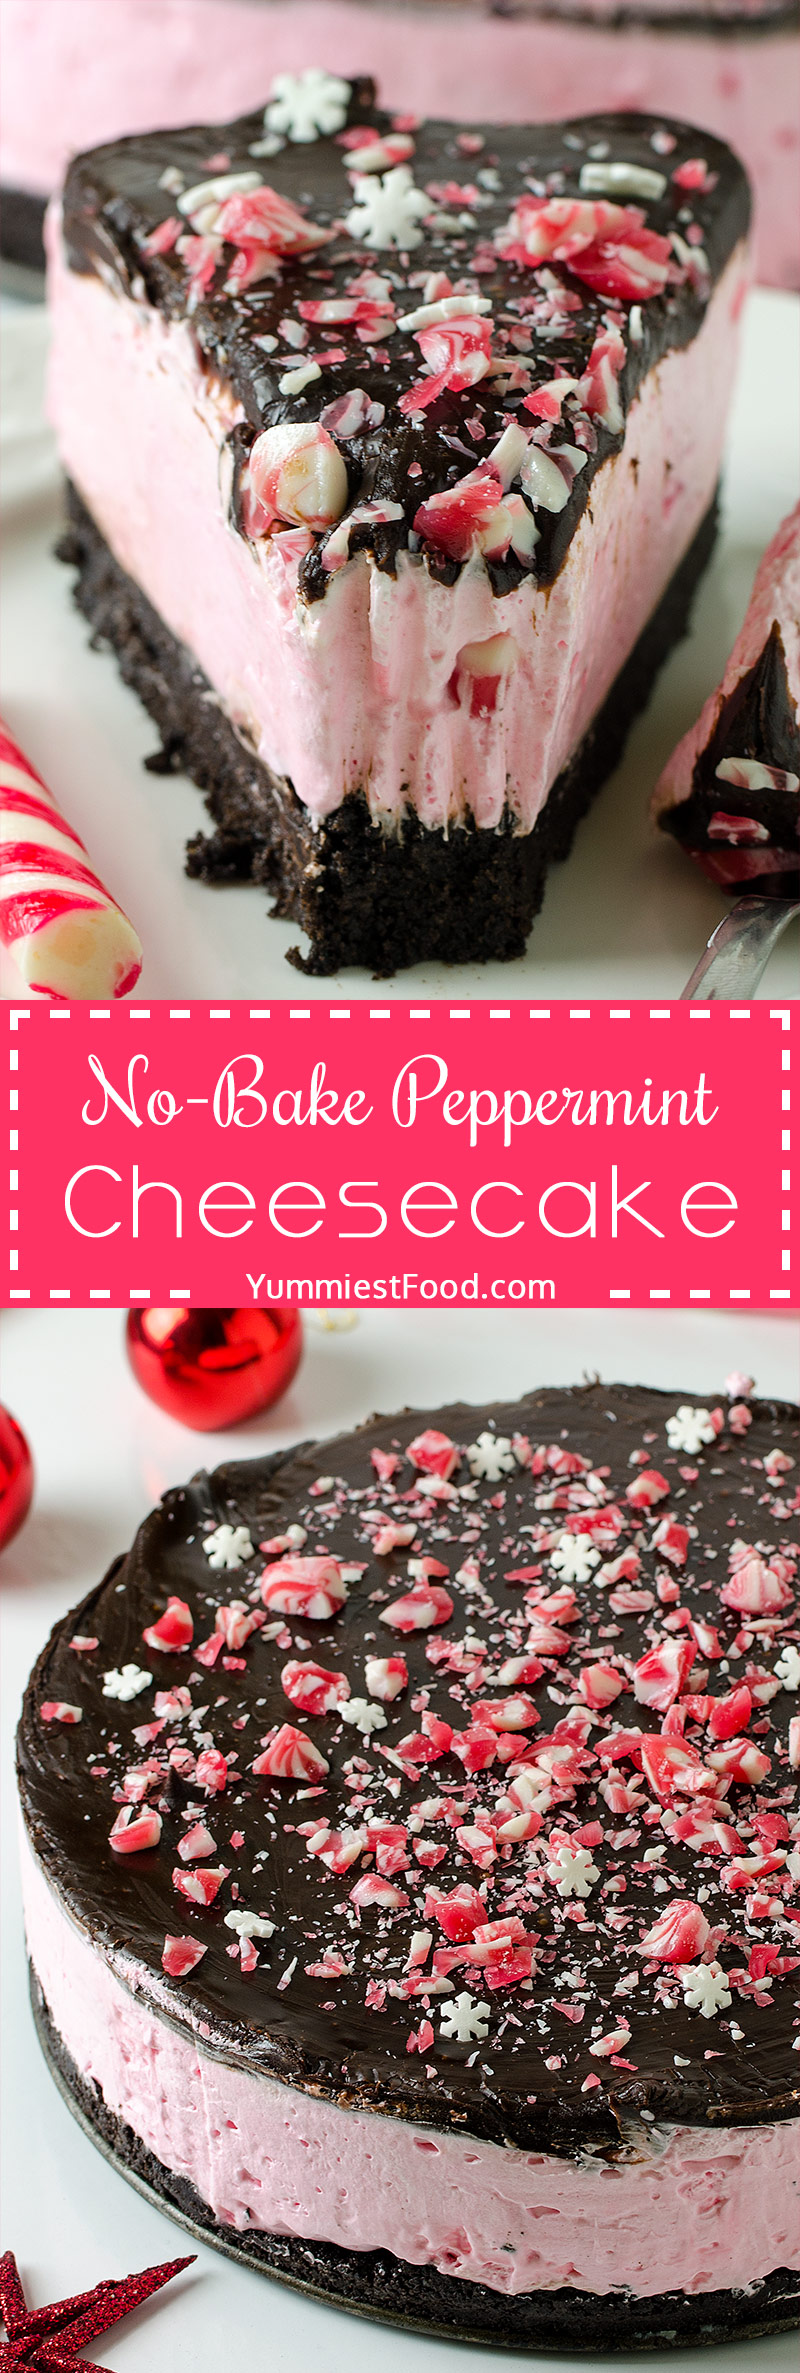 NO-BAKE PEPPERMINT CHEESECAKE - Perfect and easy No-Bake Peppermint Cheesecake is the best way to enjoy the delicious holiday flavors in a stunning dessert recipe